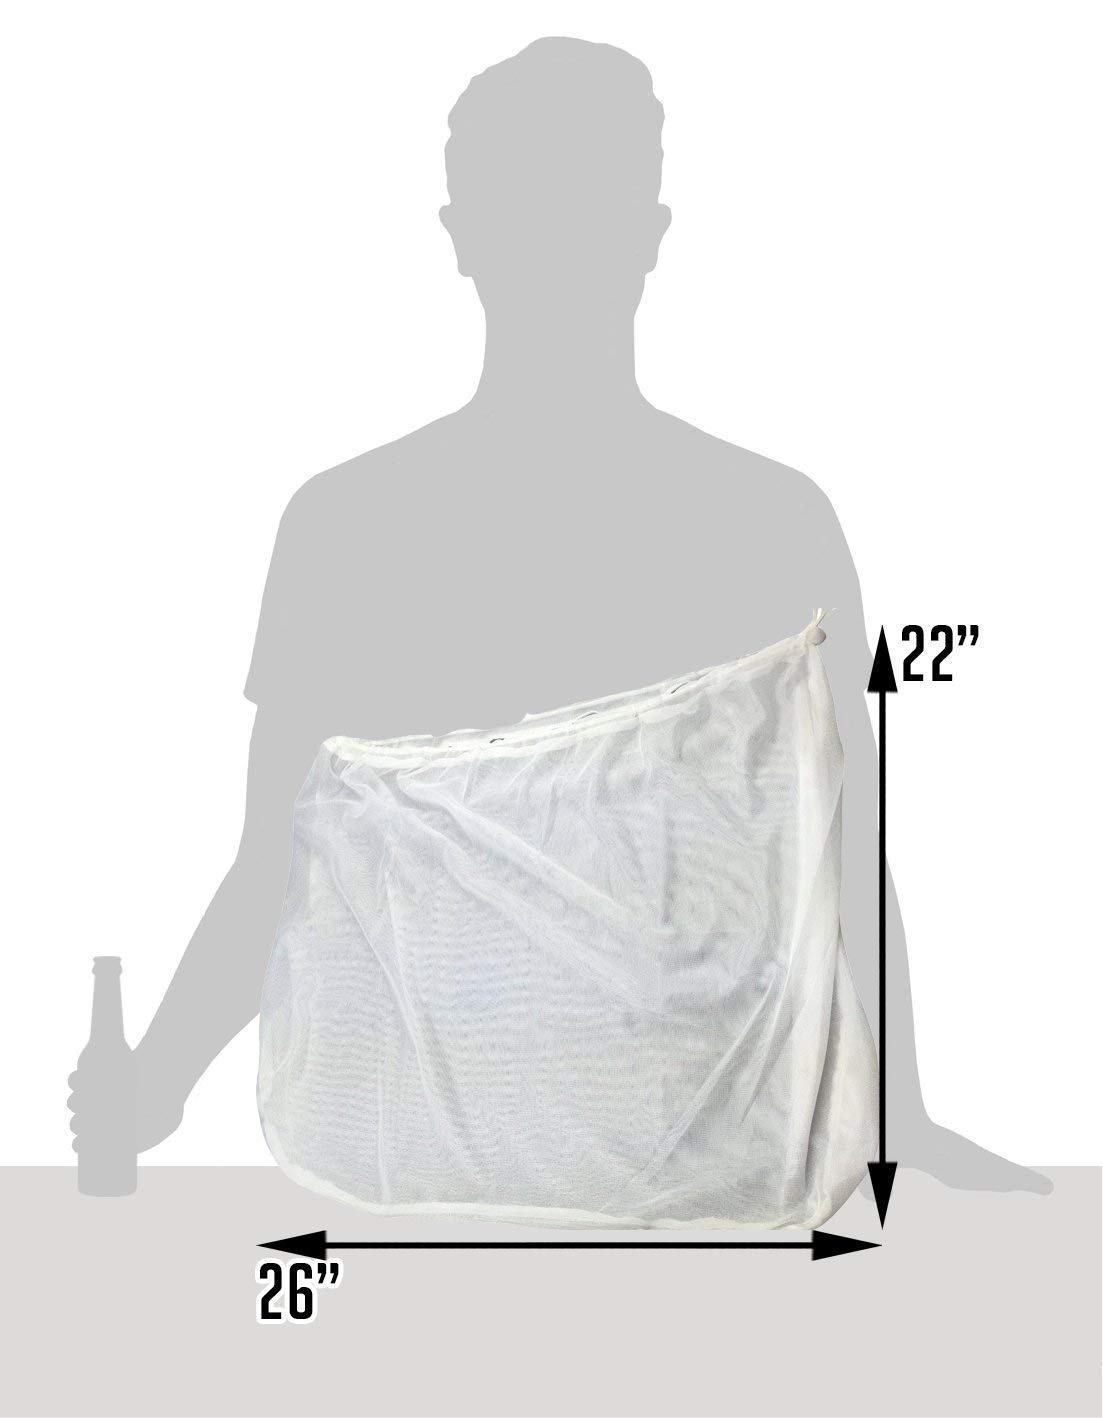 2pk Extra Large (26'' x 22'') Reusable Drawstring Straining Brew in a Bag by The Weekend Brewer (Image #3)